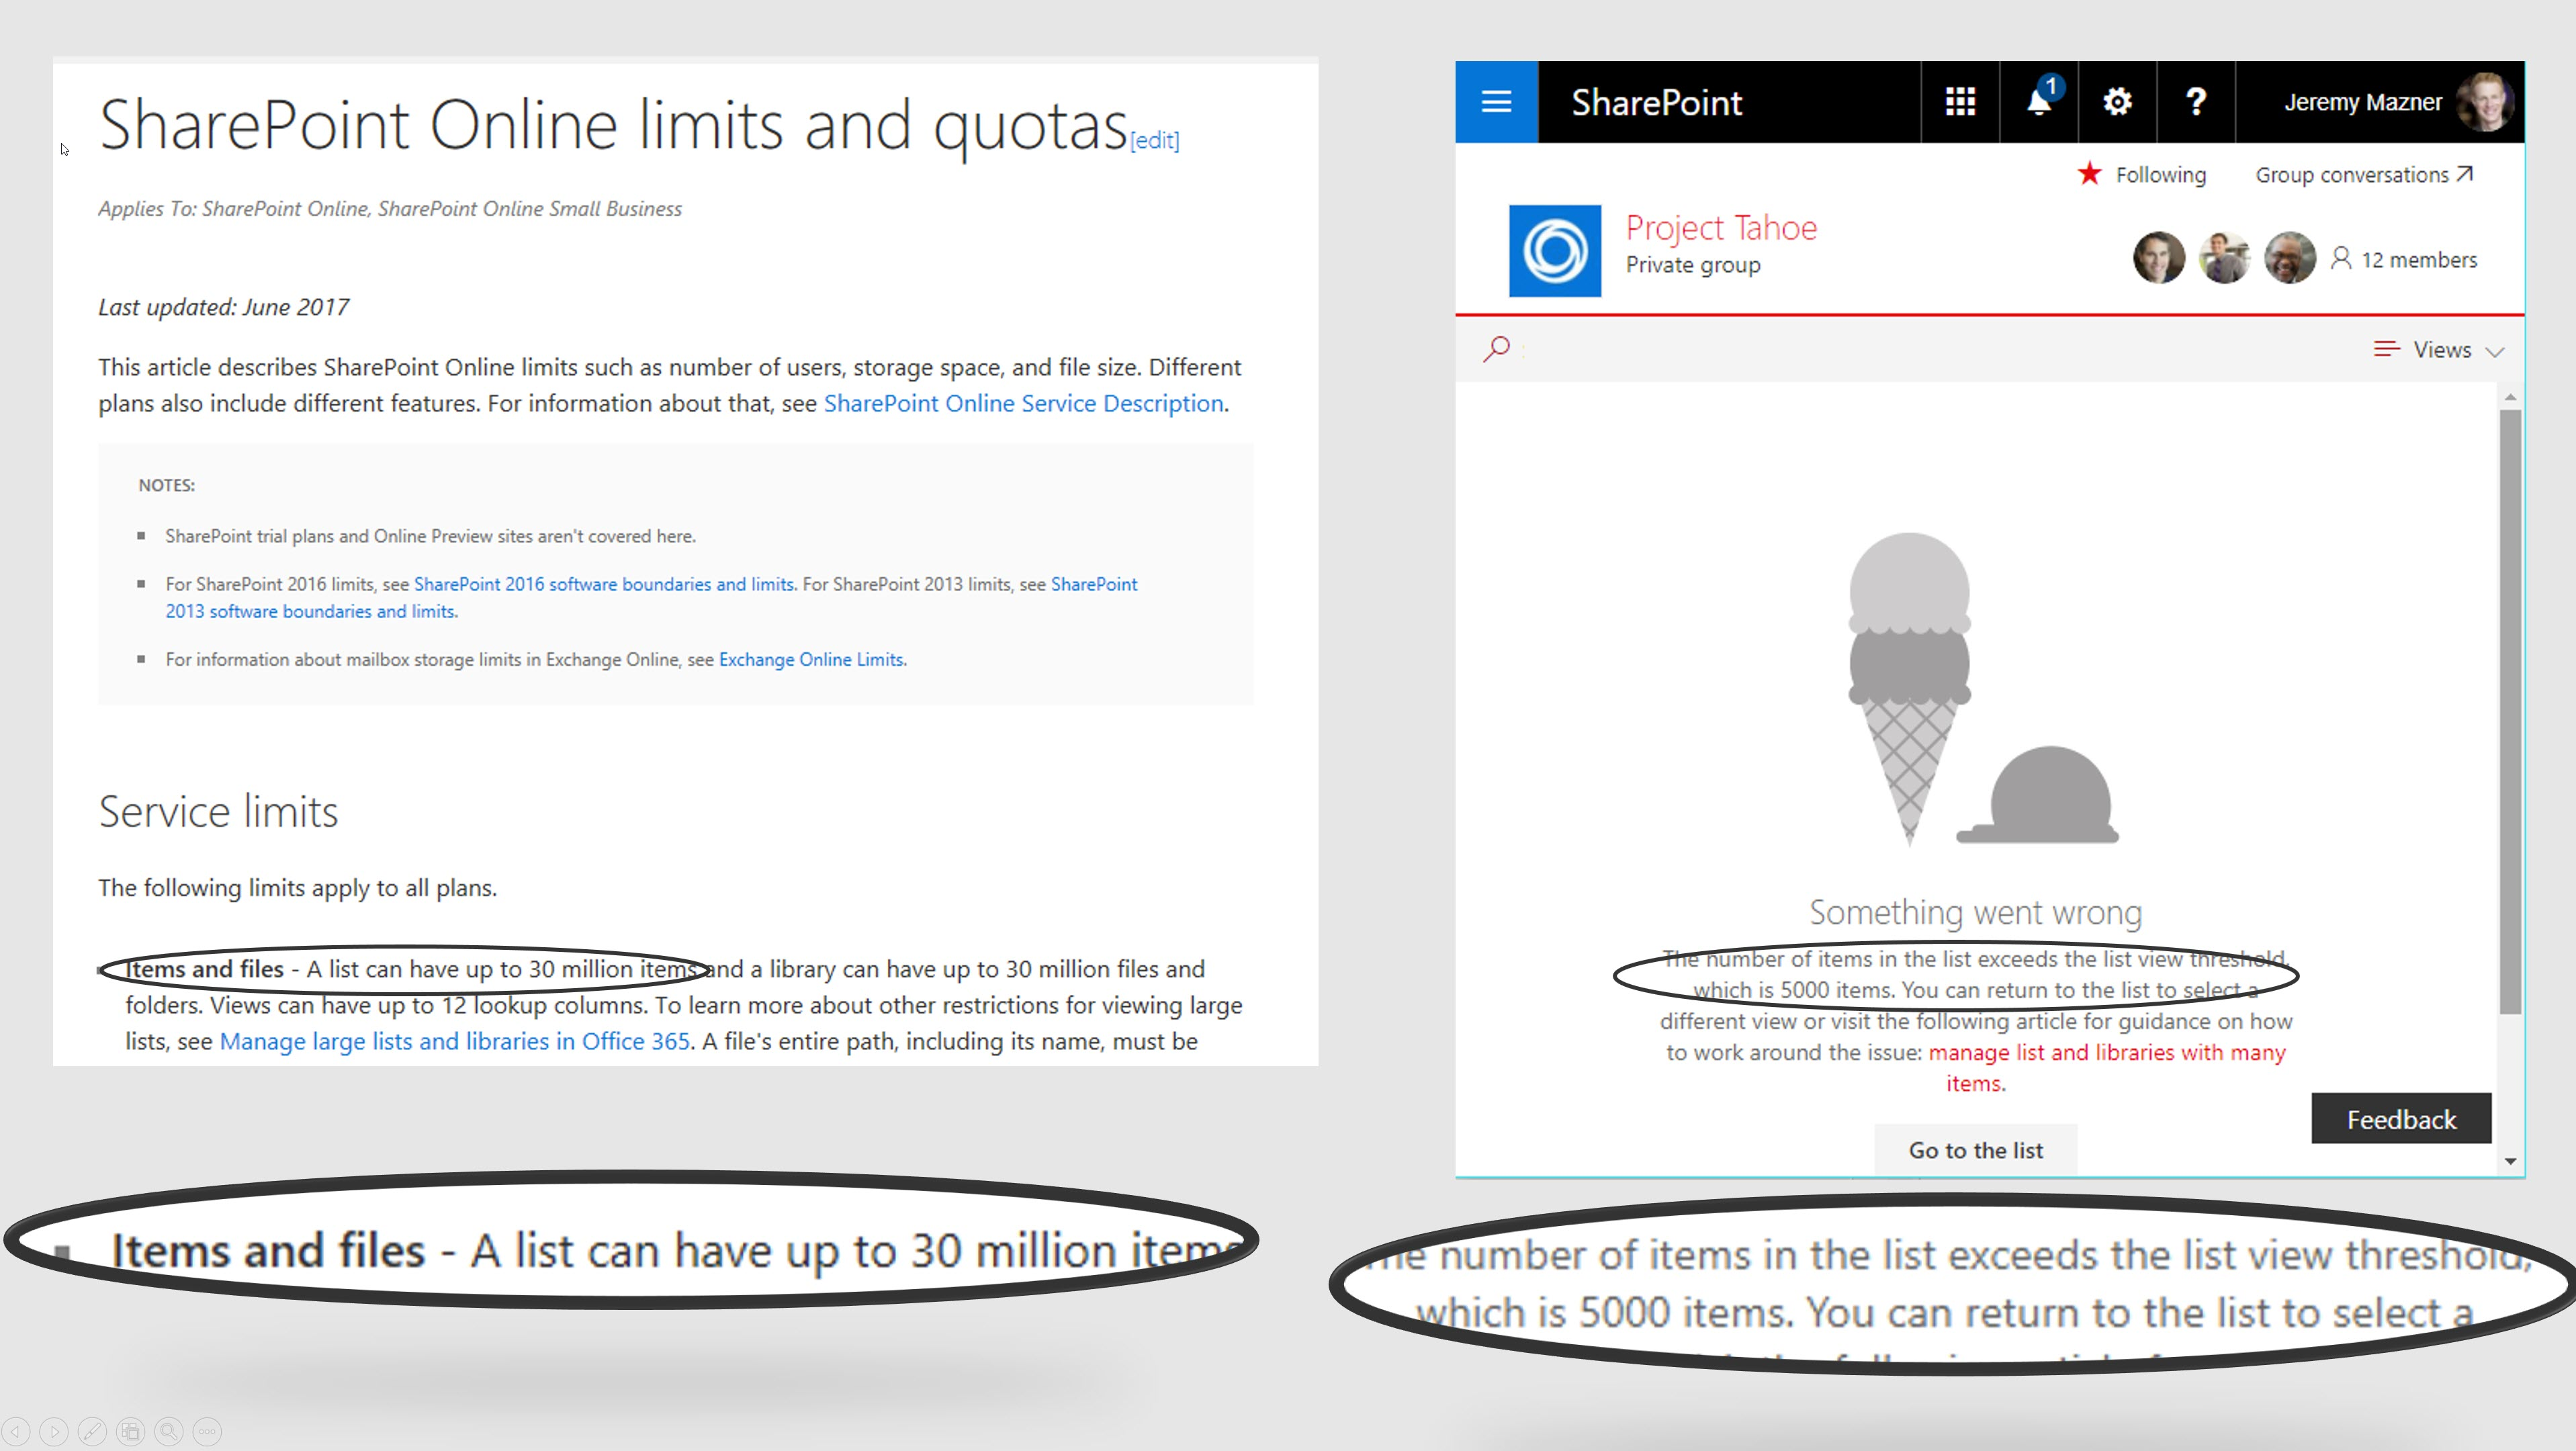 predictive indexing comes to office 365 lists and libraries marc d